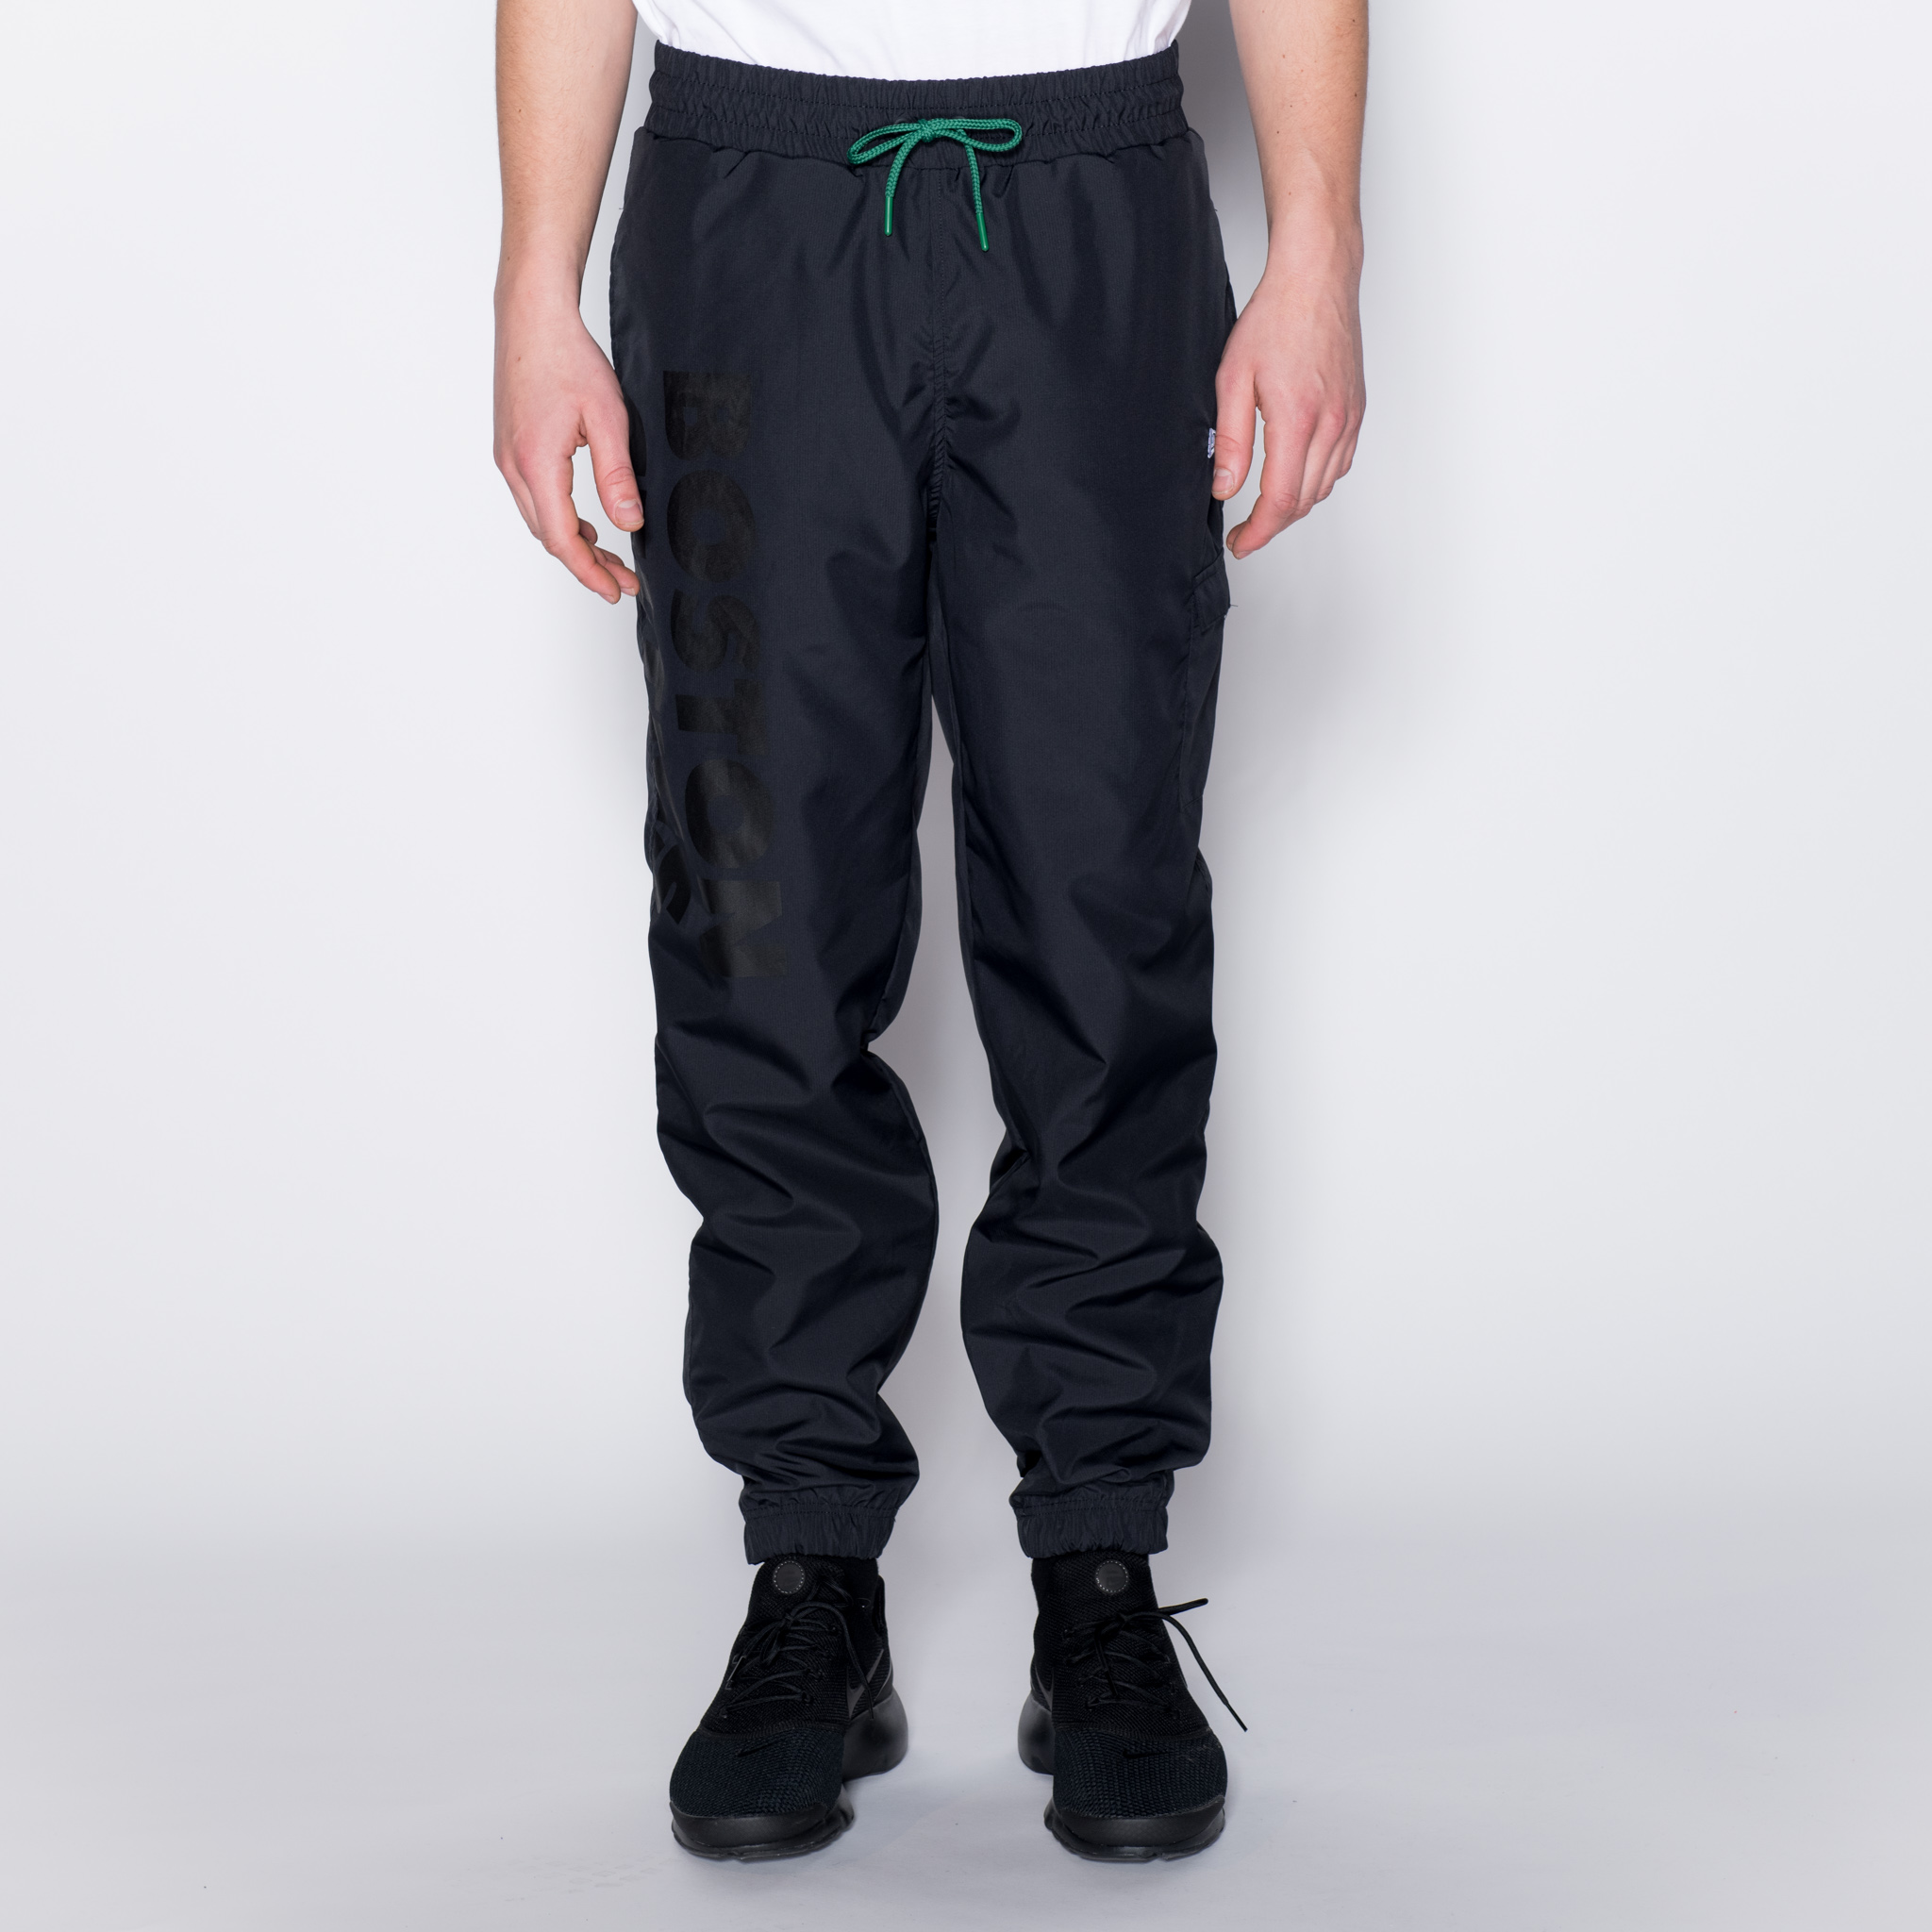 Pantalon de jogging Boston Celtics Wordmark noir